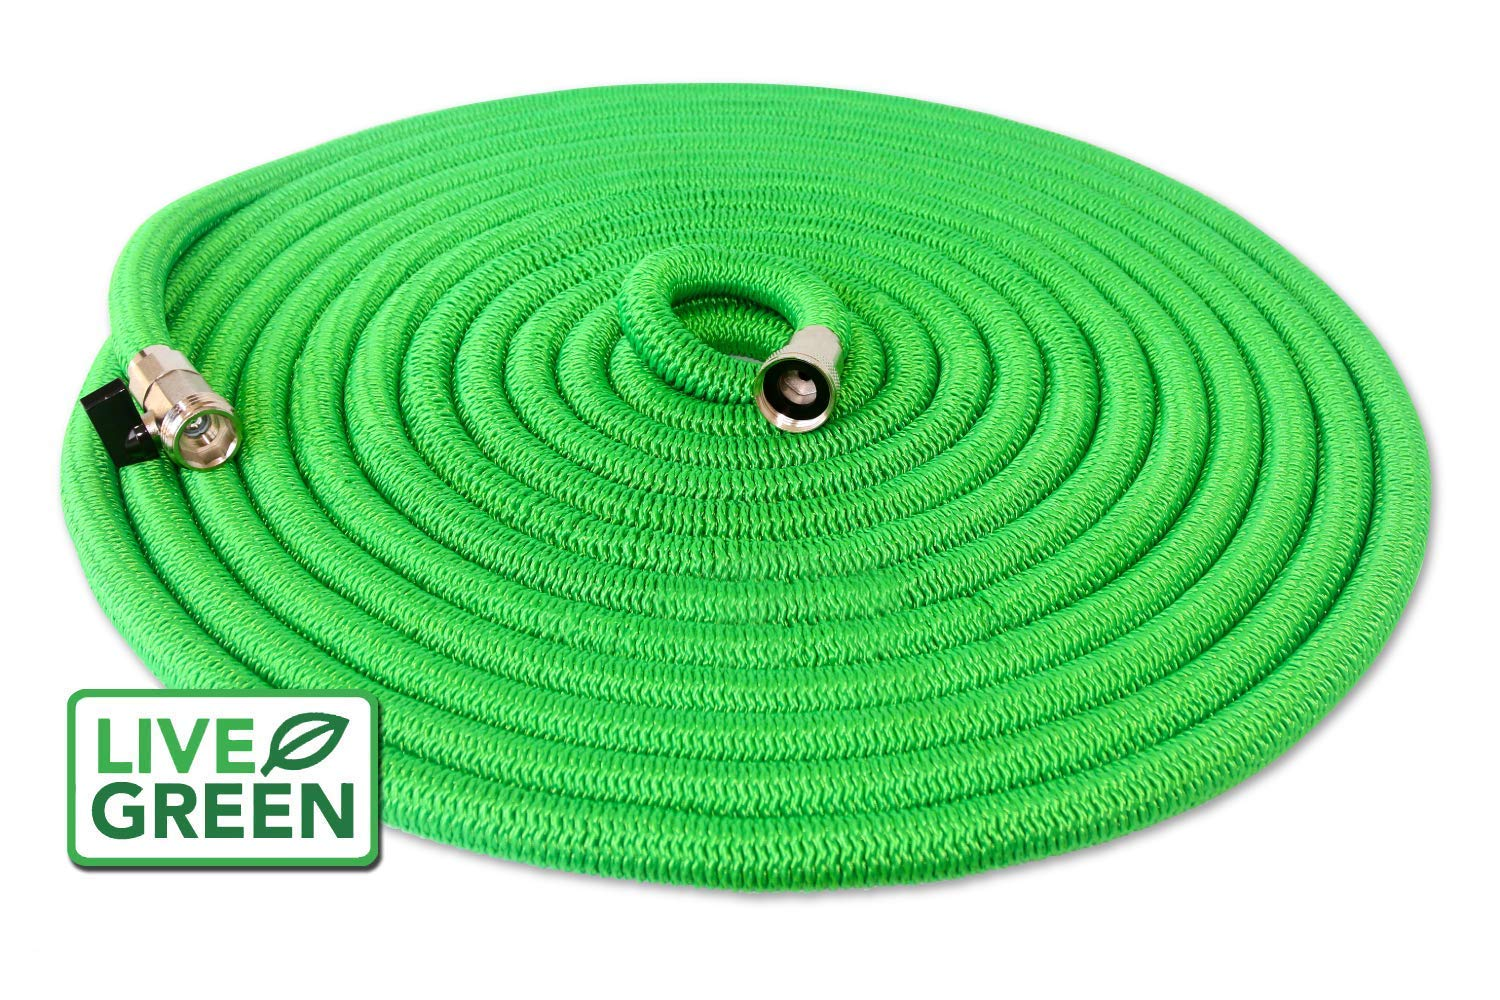 Heavy Duty 75 ft Green Expandable Garden Hose | All New Design- Lifetime Warranty | Nickel Plated Brass Fittings | Nozzle Included (75, Green)